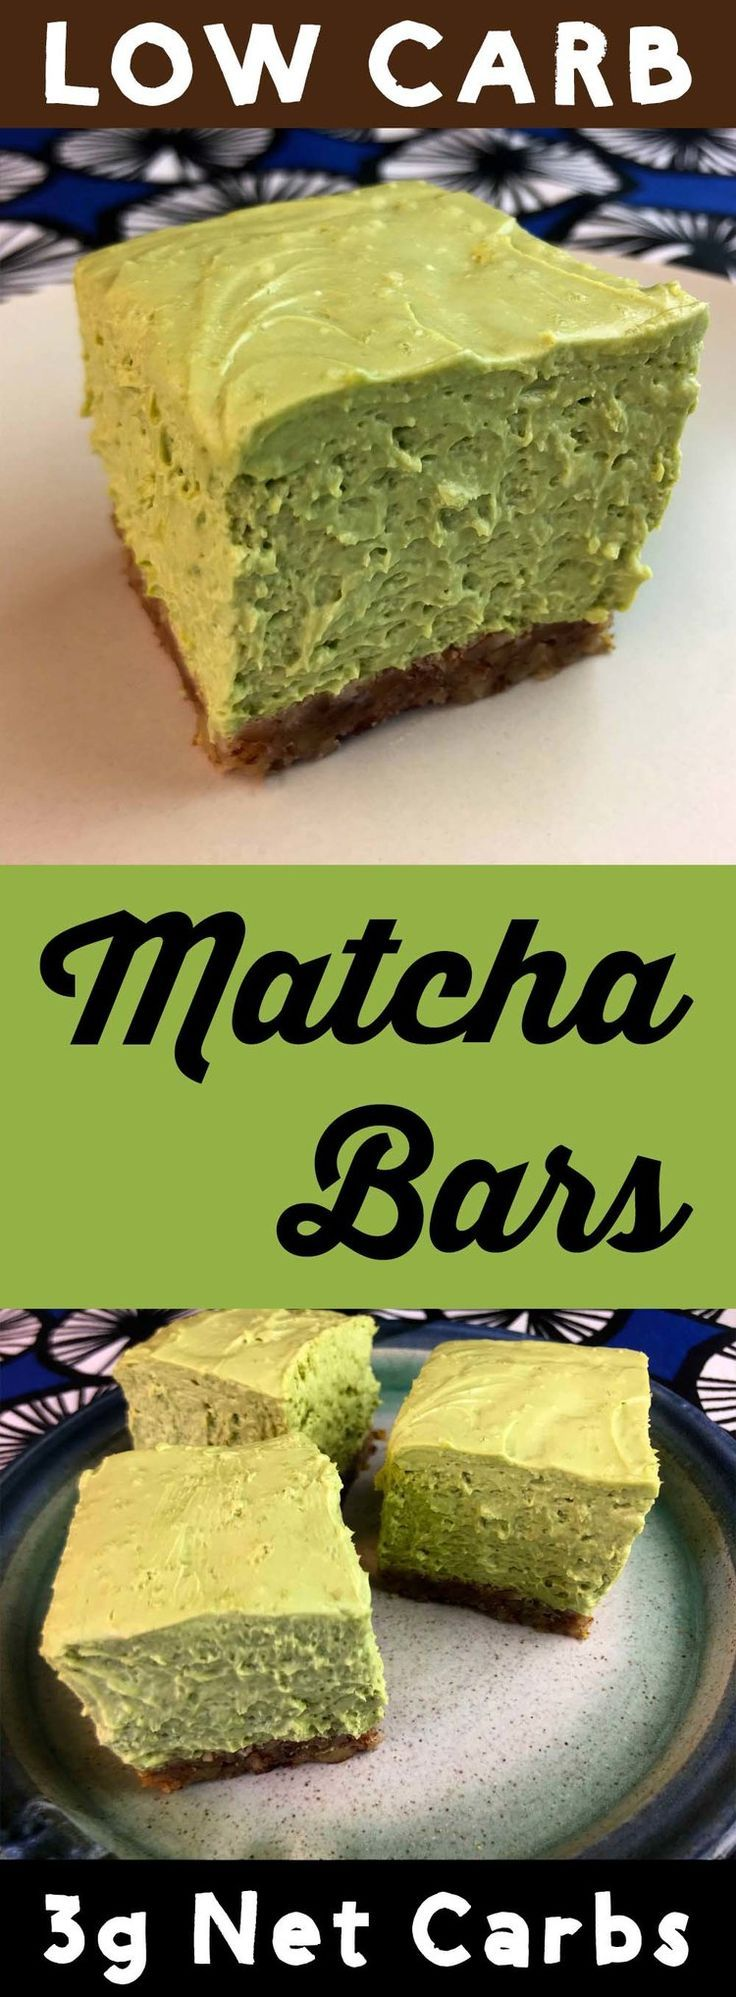 Low Carb Matcha Pecan Bars